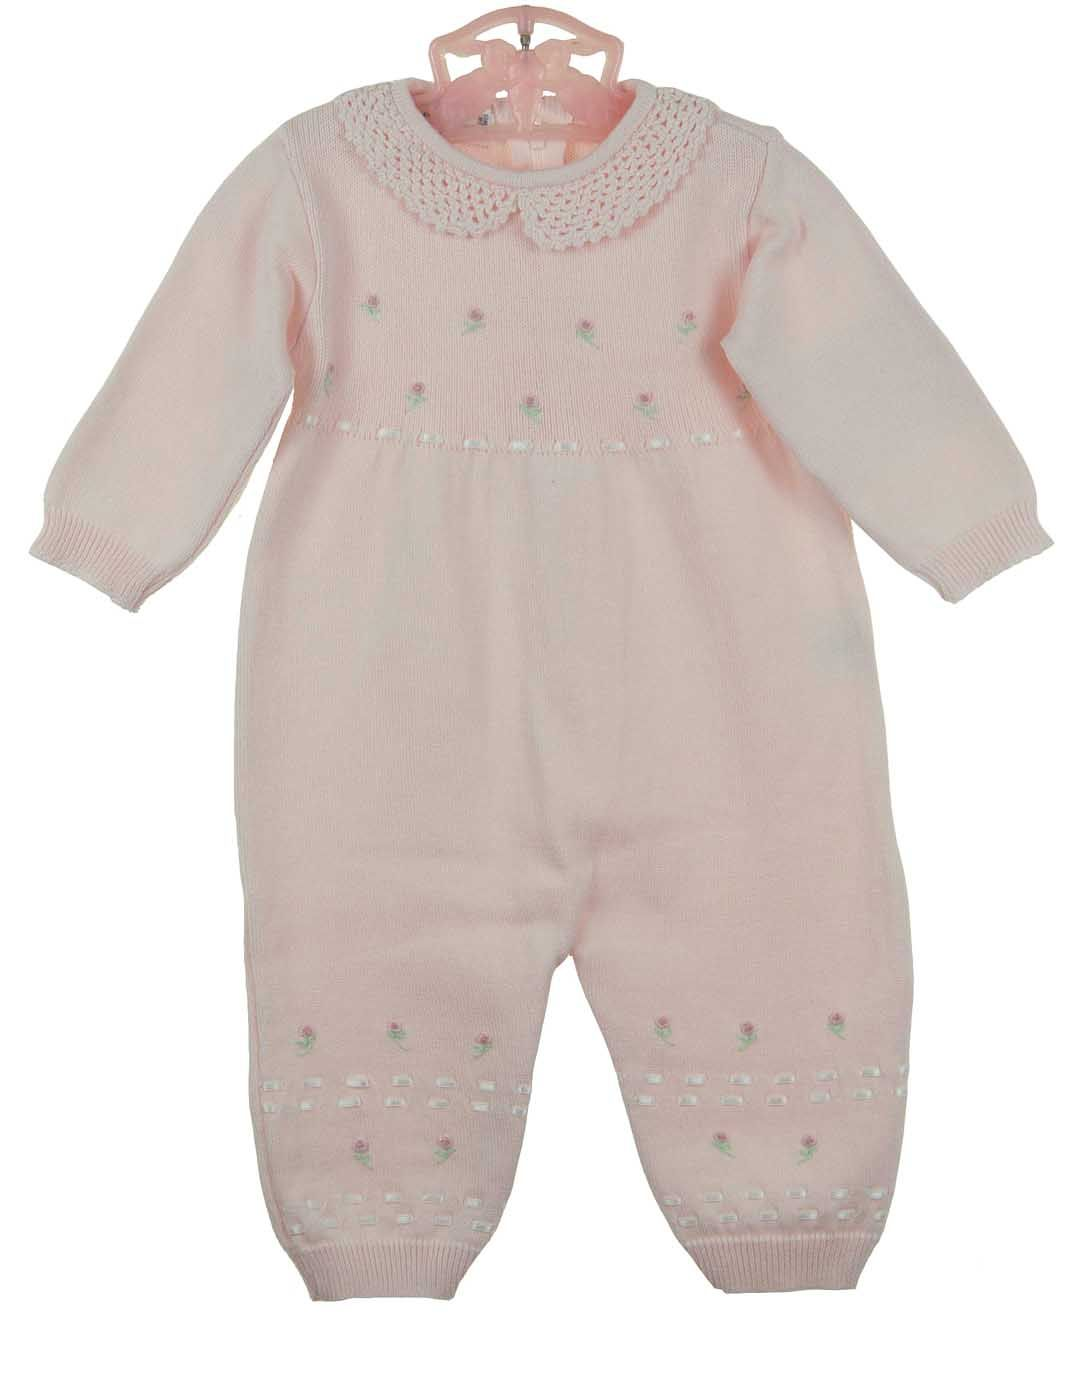 d5736600e NEW Feltman Brothers Pink Cotton Knit Romper with Rosebud Embroidery ...